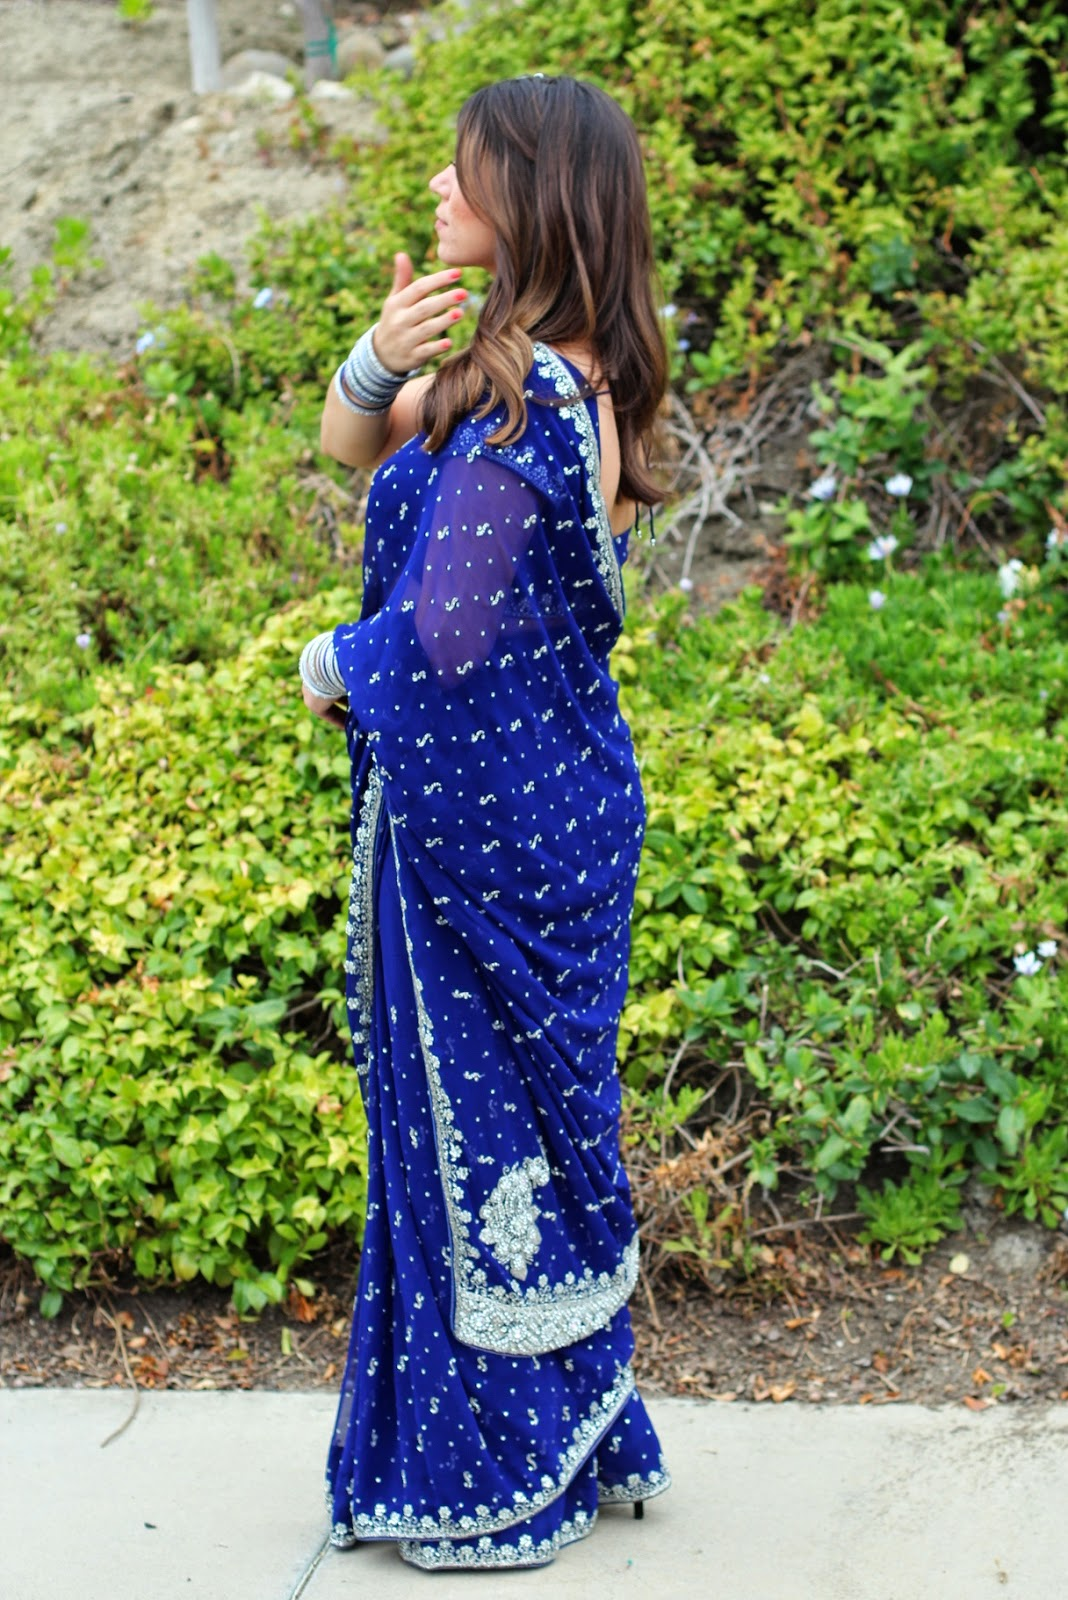 the south coast movement blending cultures n sari wear the shop where i got this beautiful blue sari is called raas the customer service was great and the w in the store was very helpful